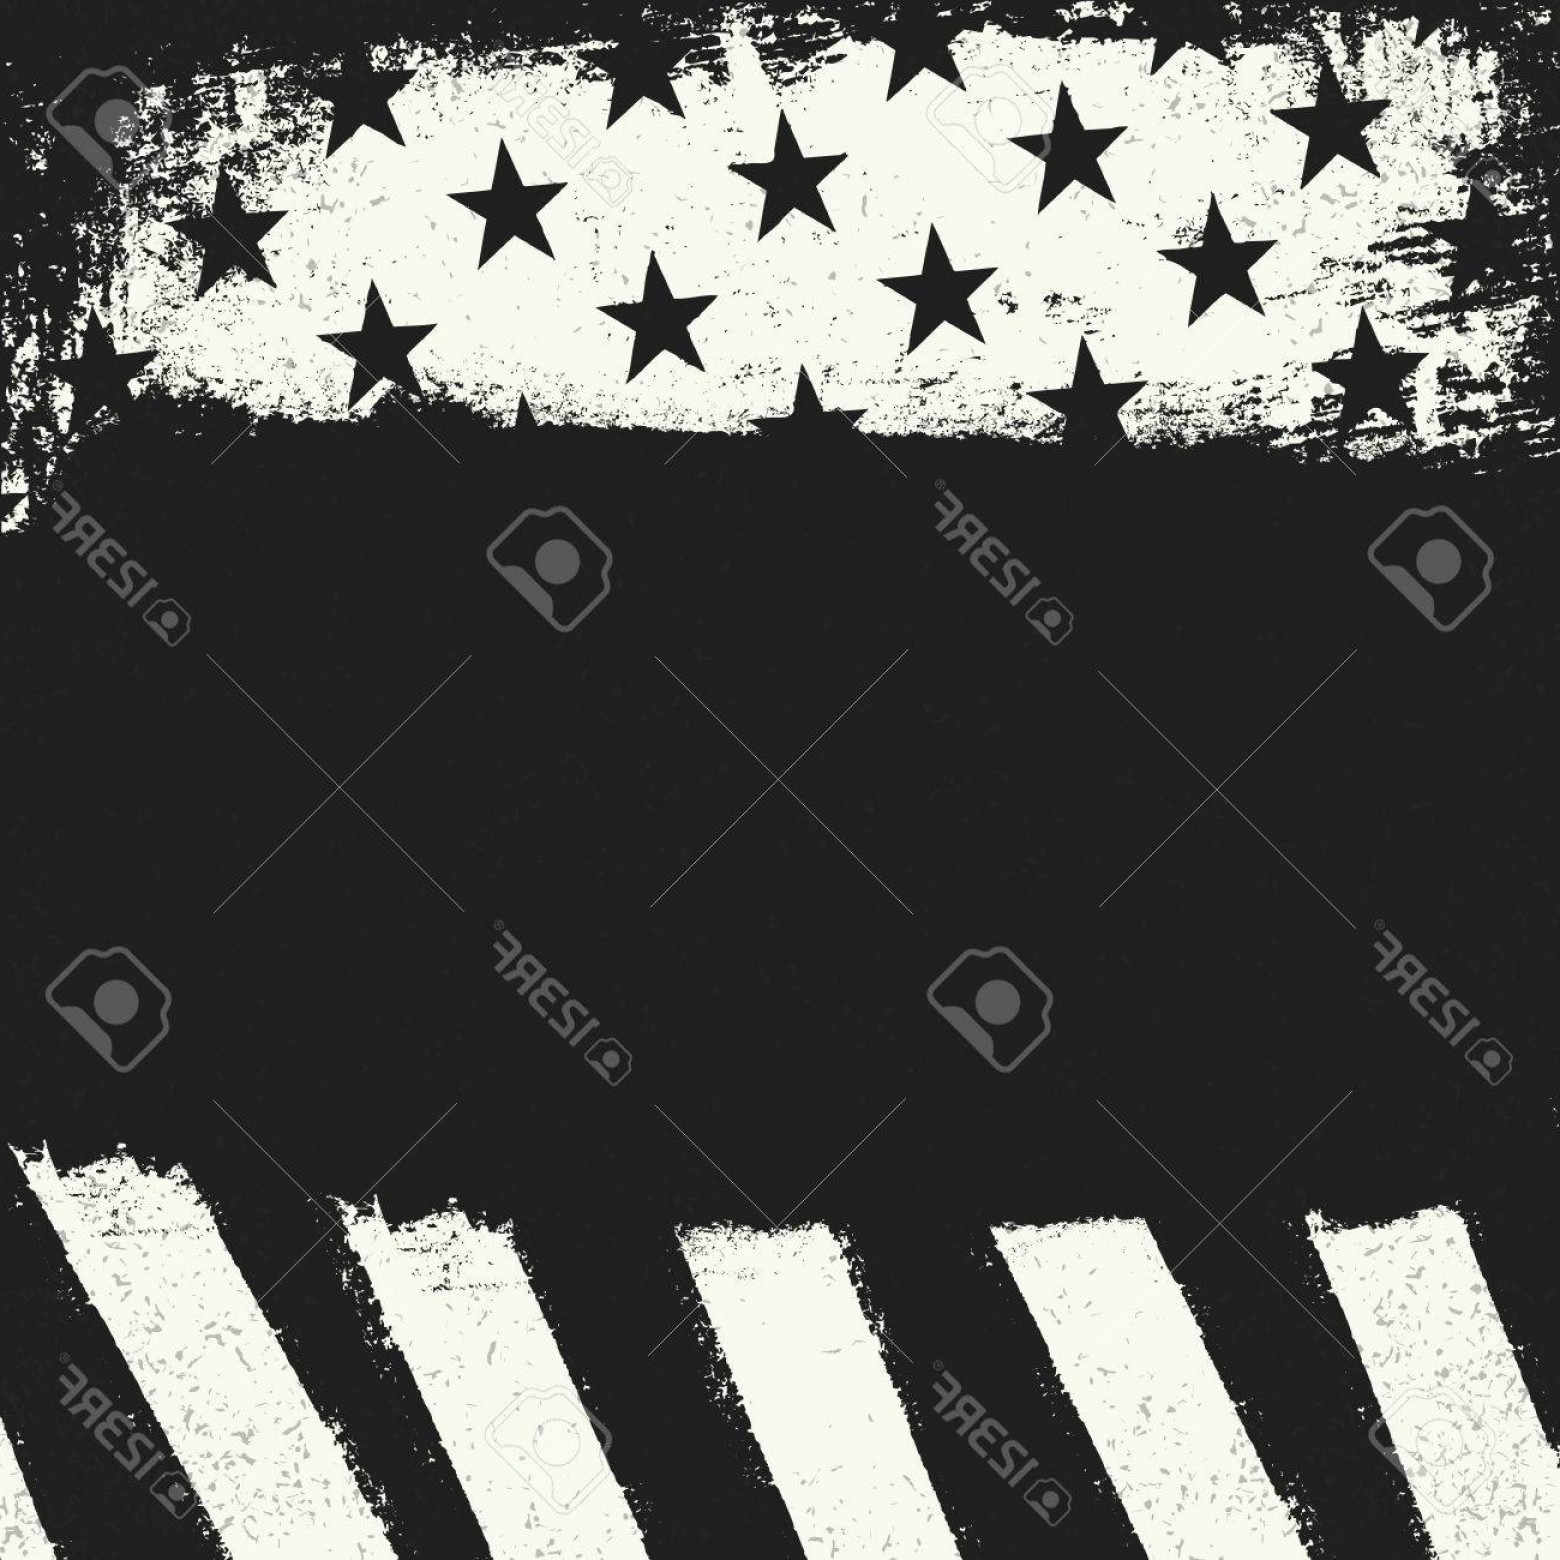 Black And White Negative Vector: Photostock Vector Empty Black Grunge Copy Space On Black And White Negative American Flag Background Patriotic Design